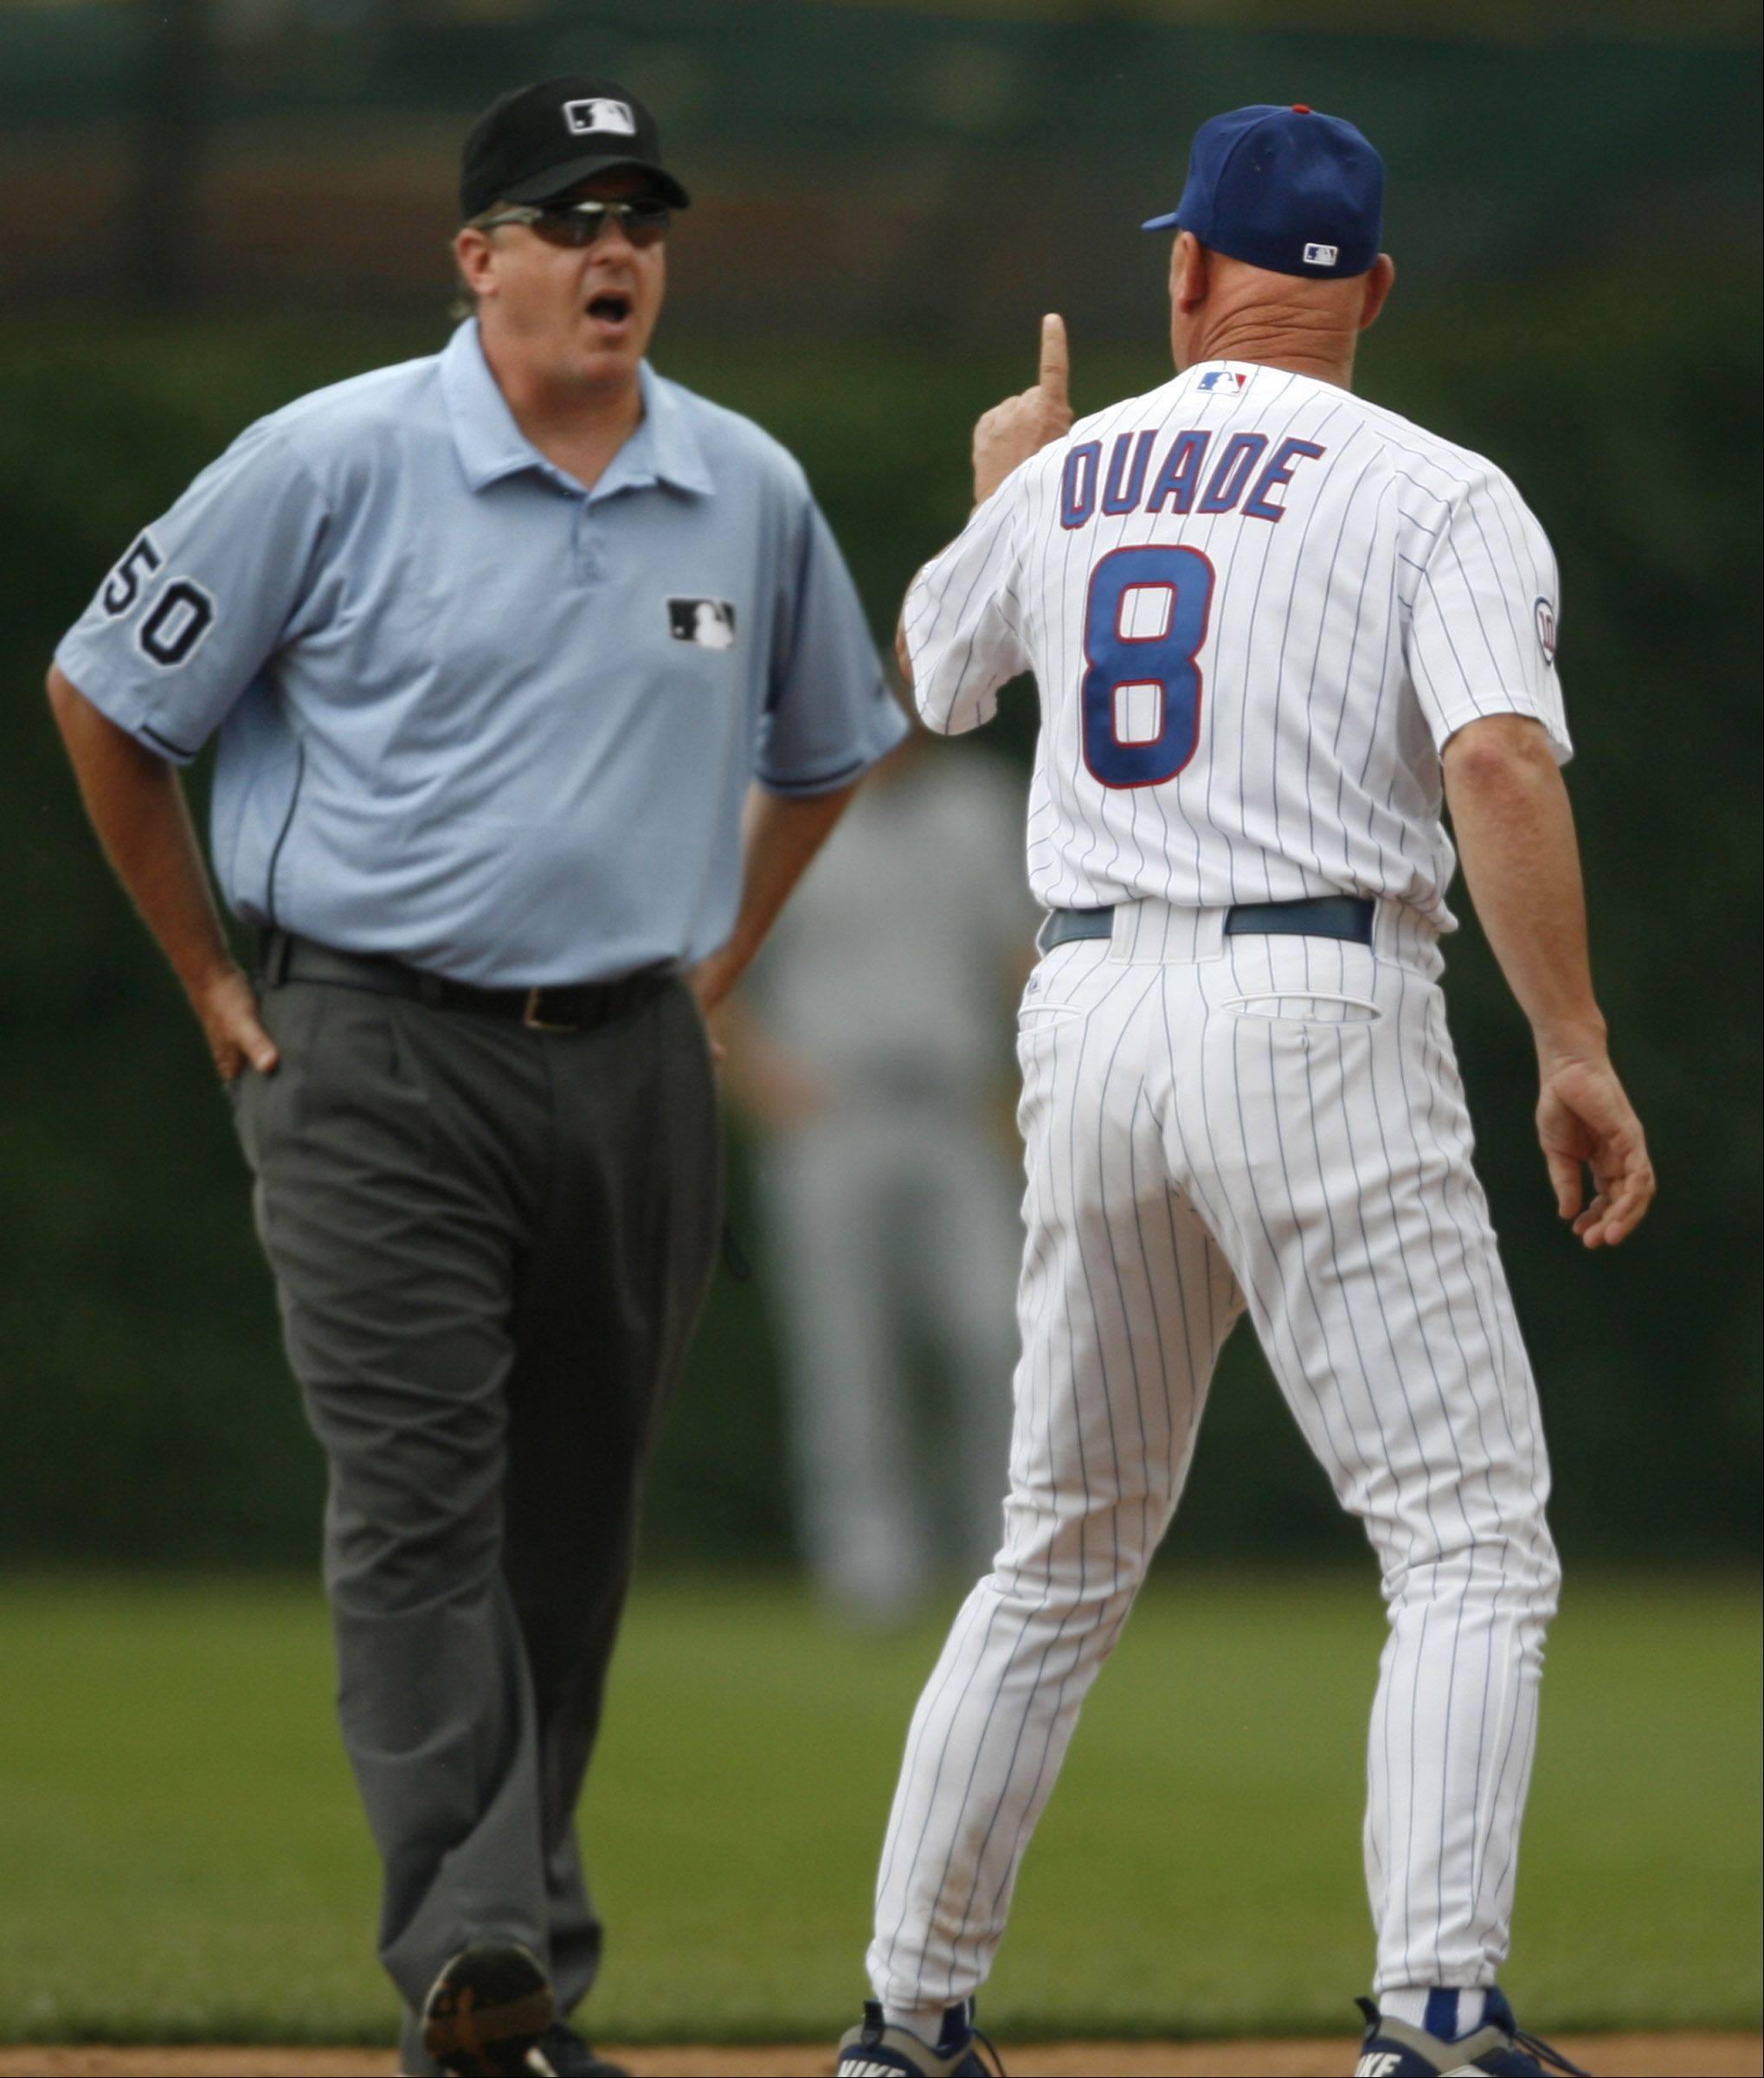 Cubs manager Mike Quade continues to argue after being thrown out of the game with the White Sox at Wrigley Field on Saturday.